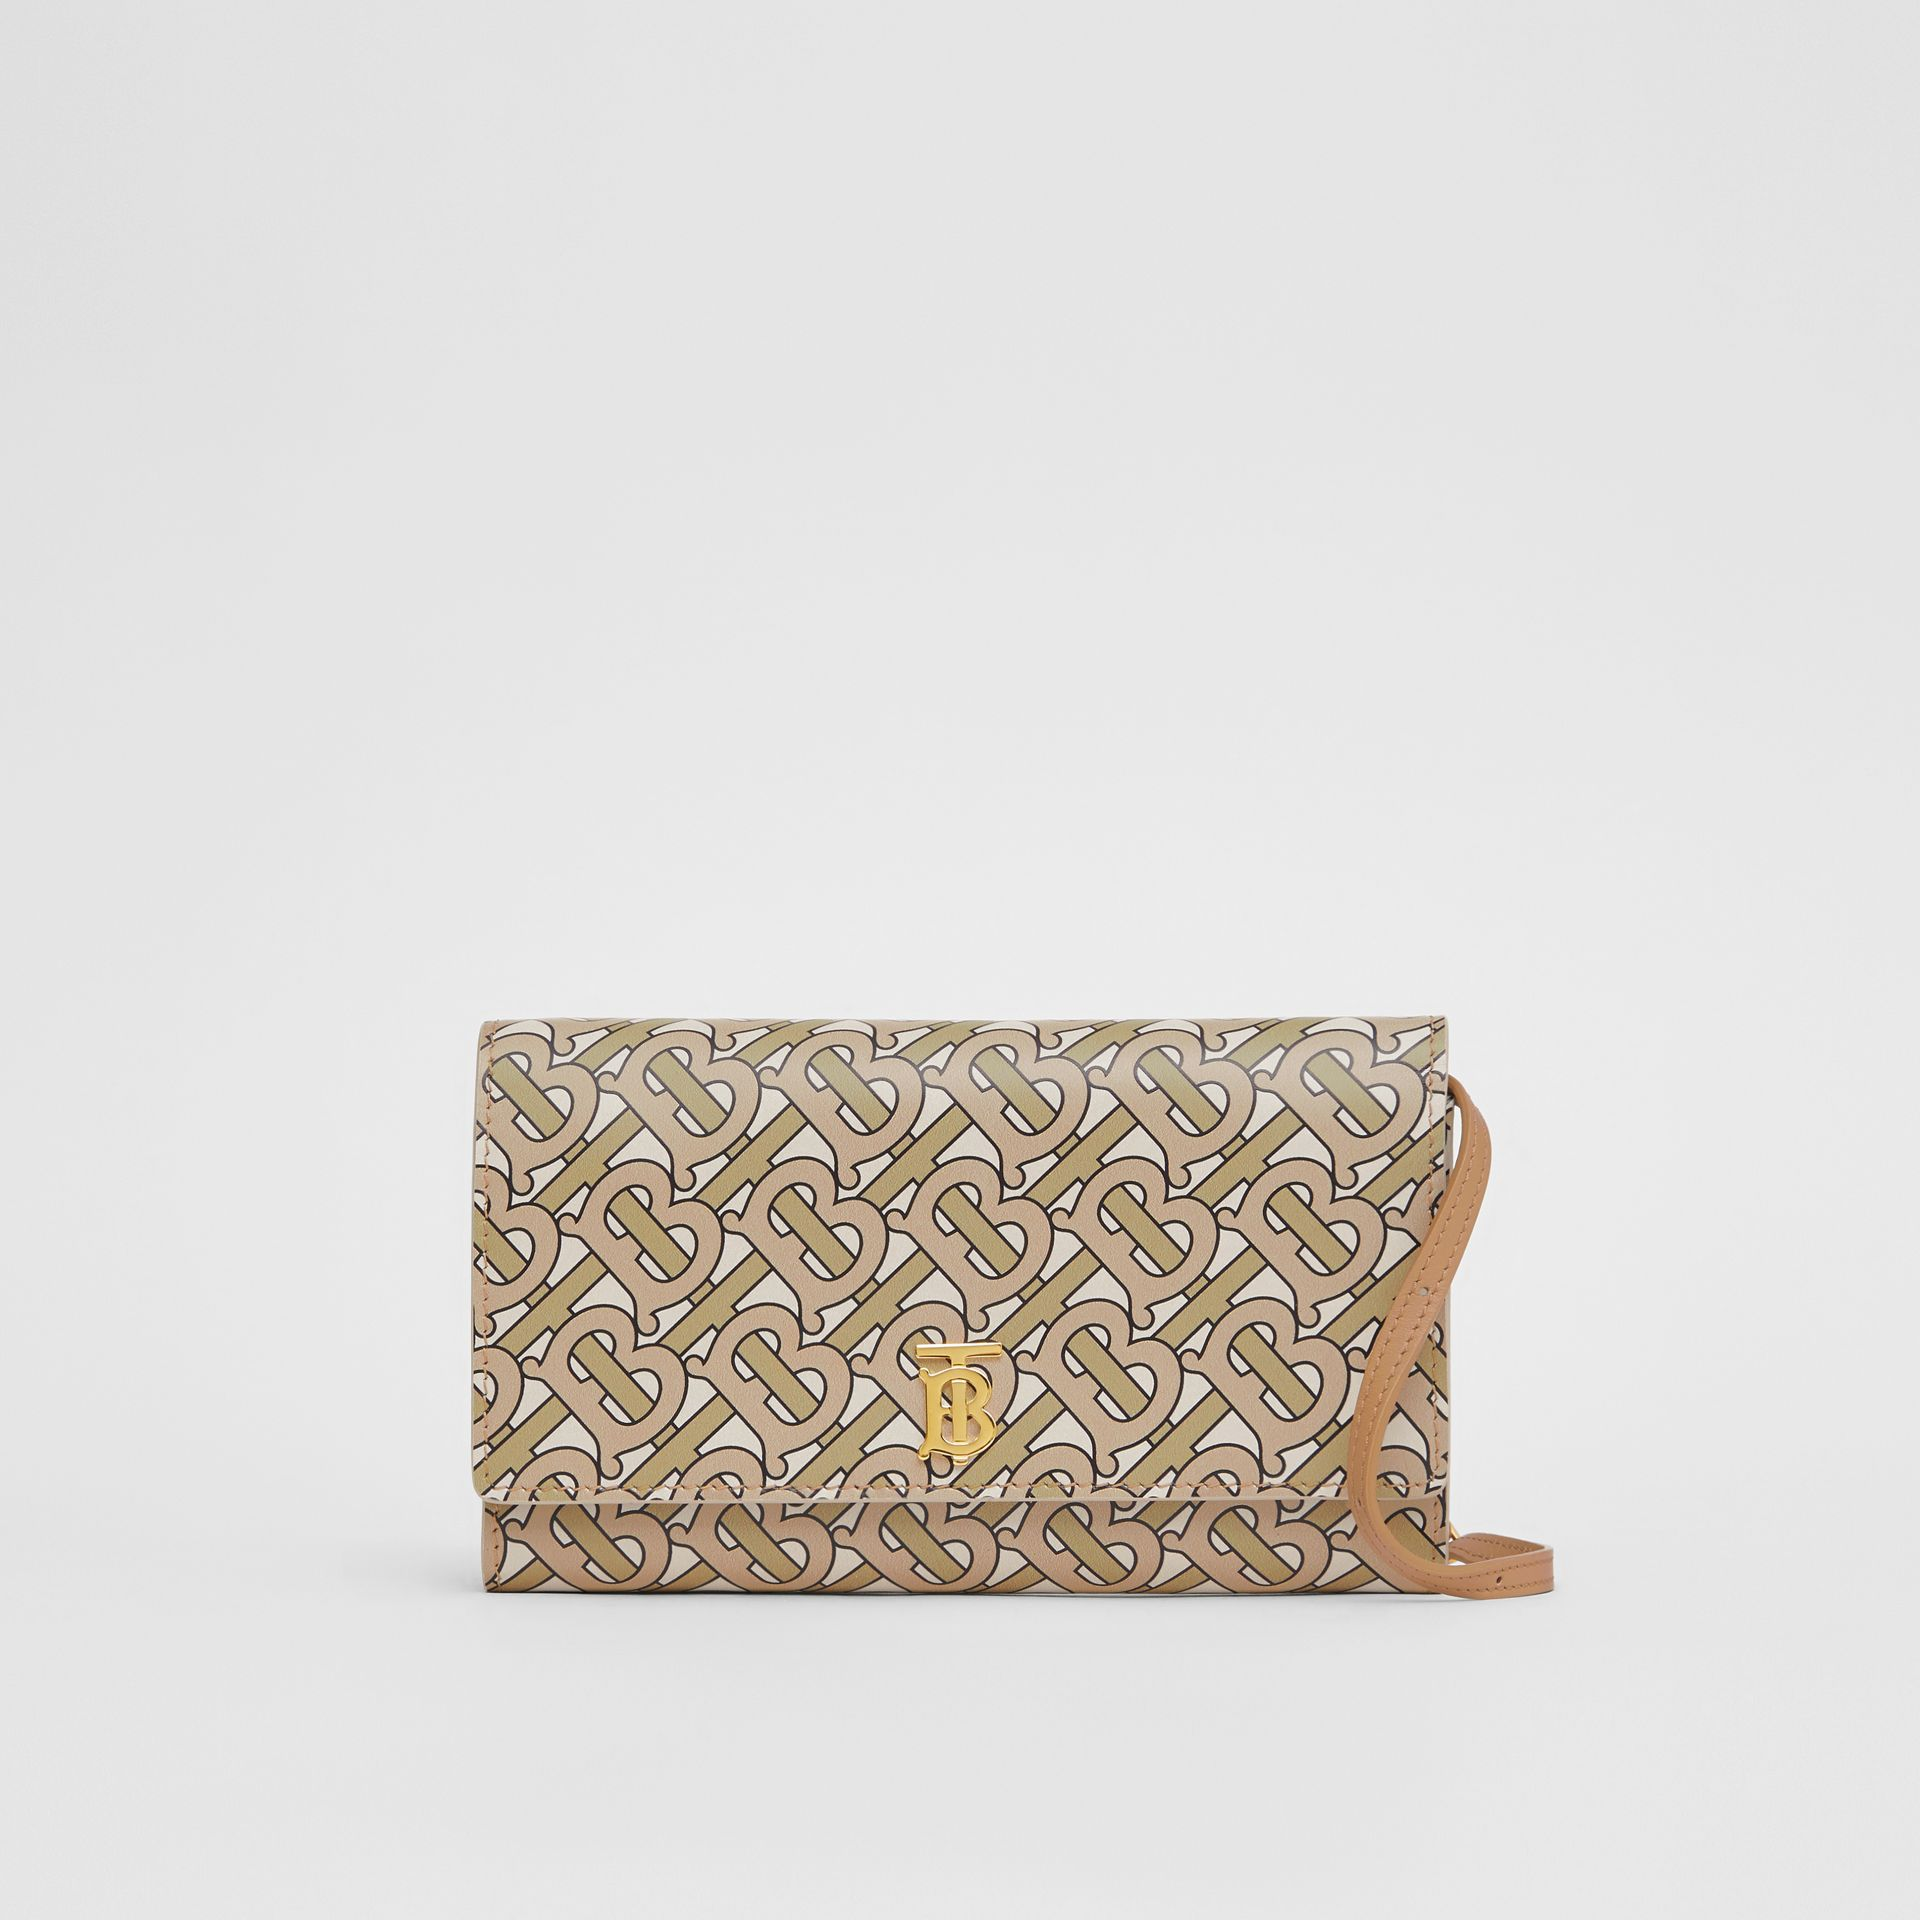 Monogram Print Leather Wallet with Detachable Strap in Beige - Women | Burberry United States - gallery image 0